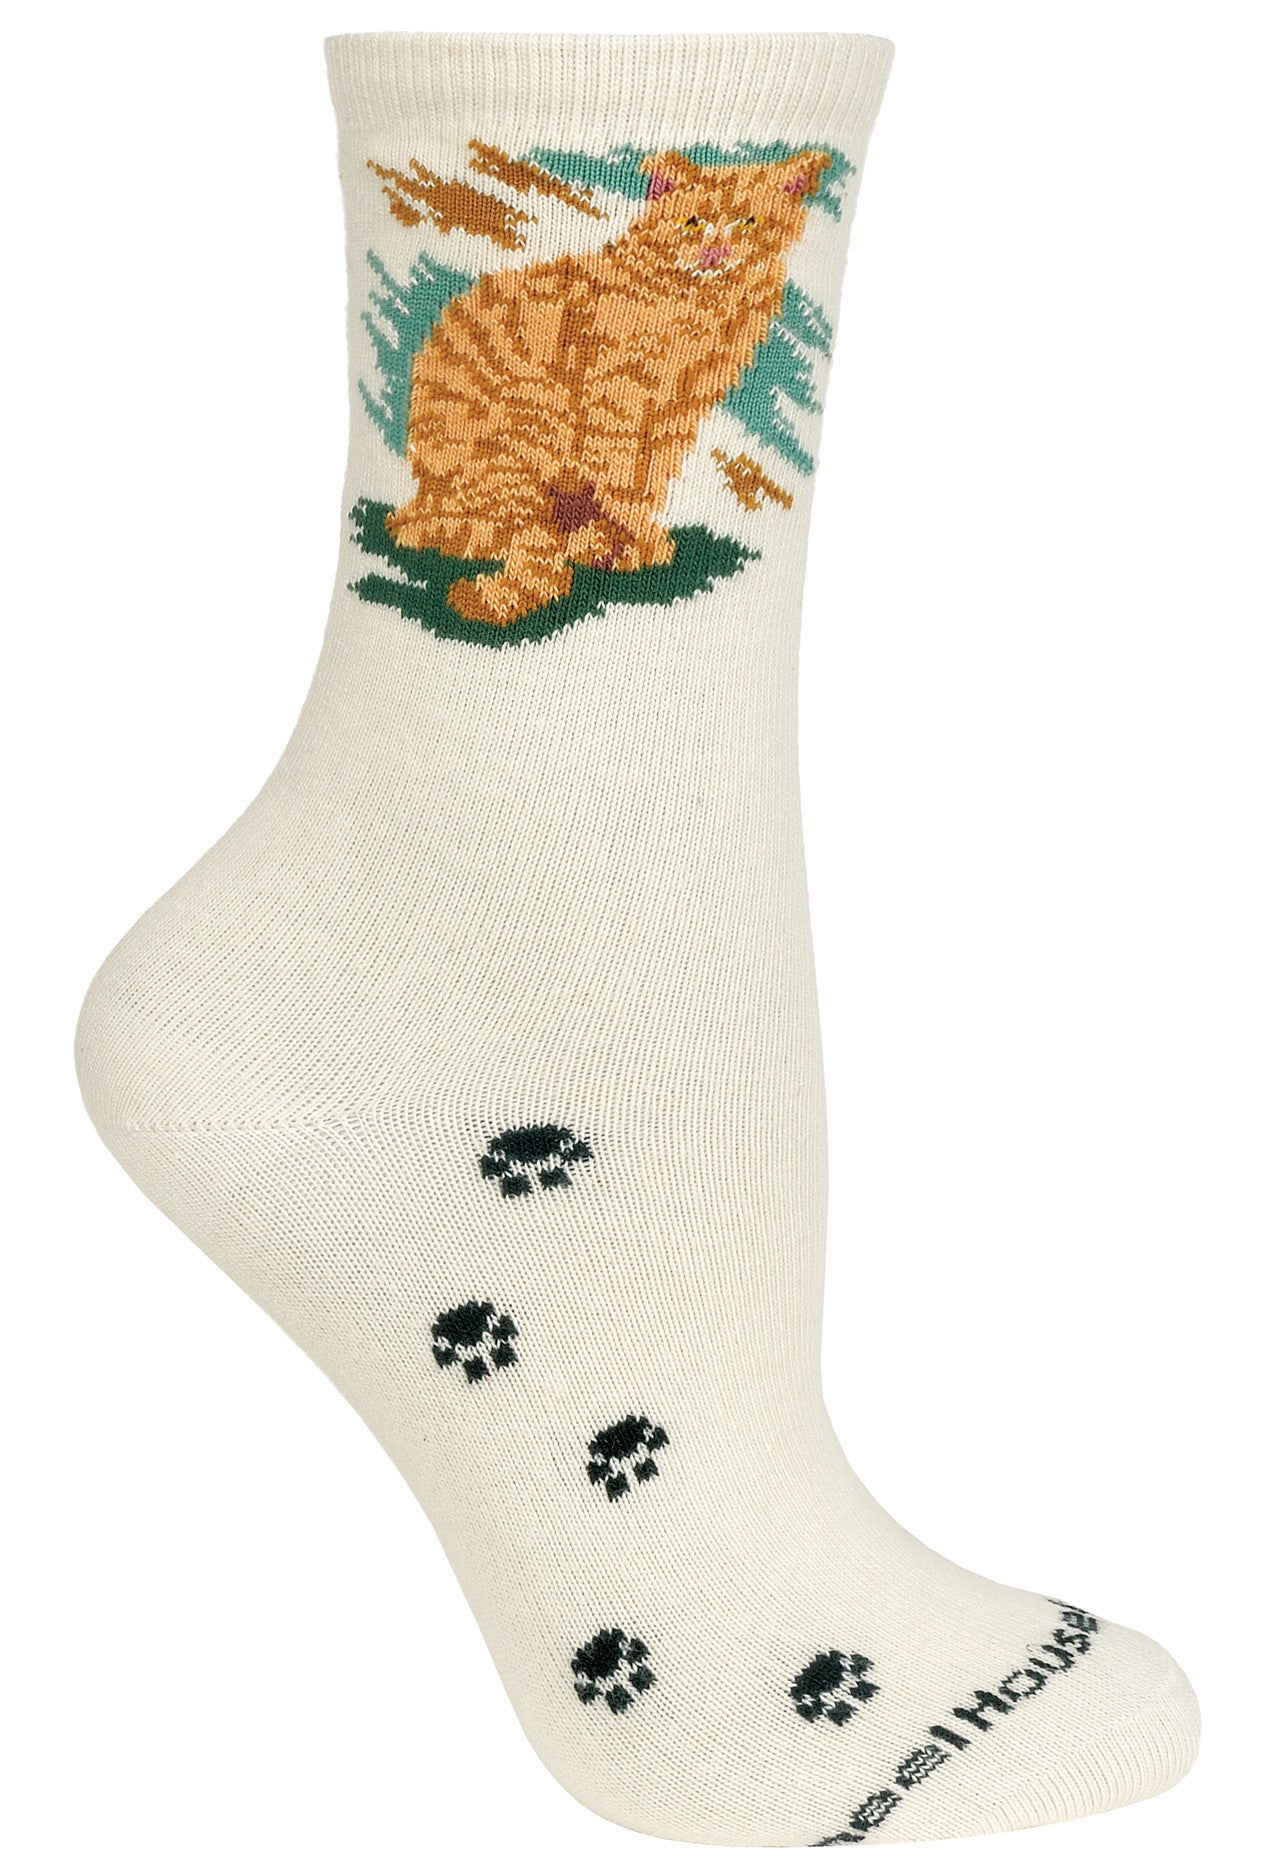 Orange Tabby Cat on Natural Crew Socks